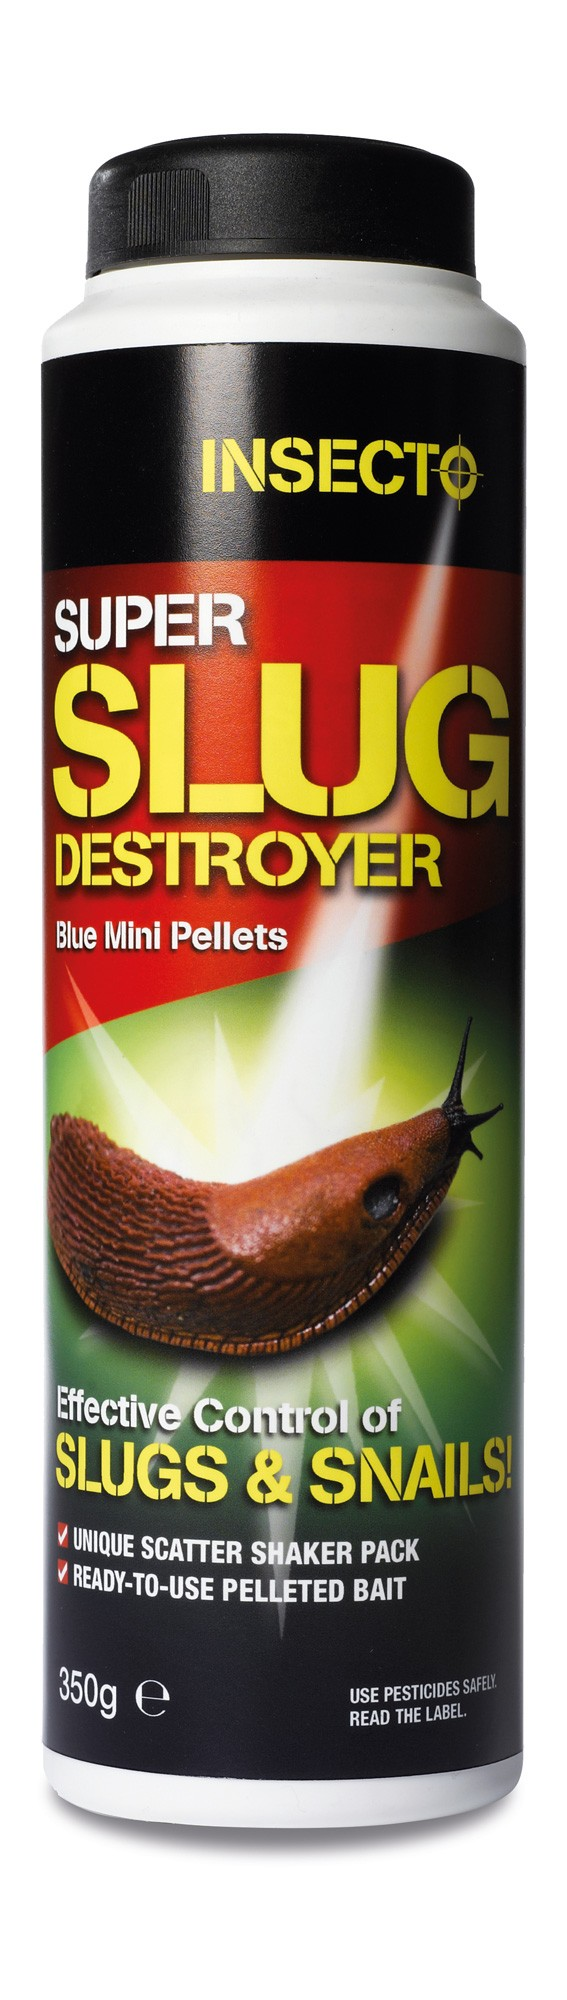 Insecto Super Slug Destroyer 350g Bottle